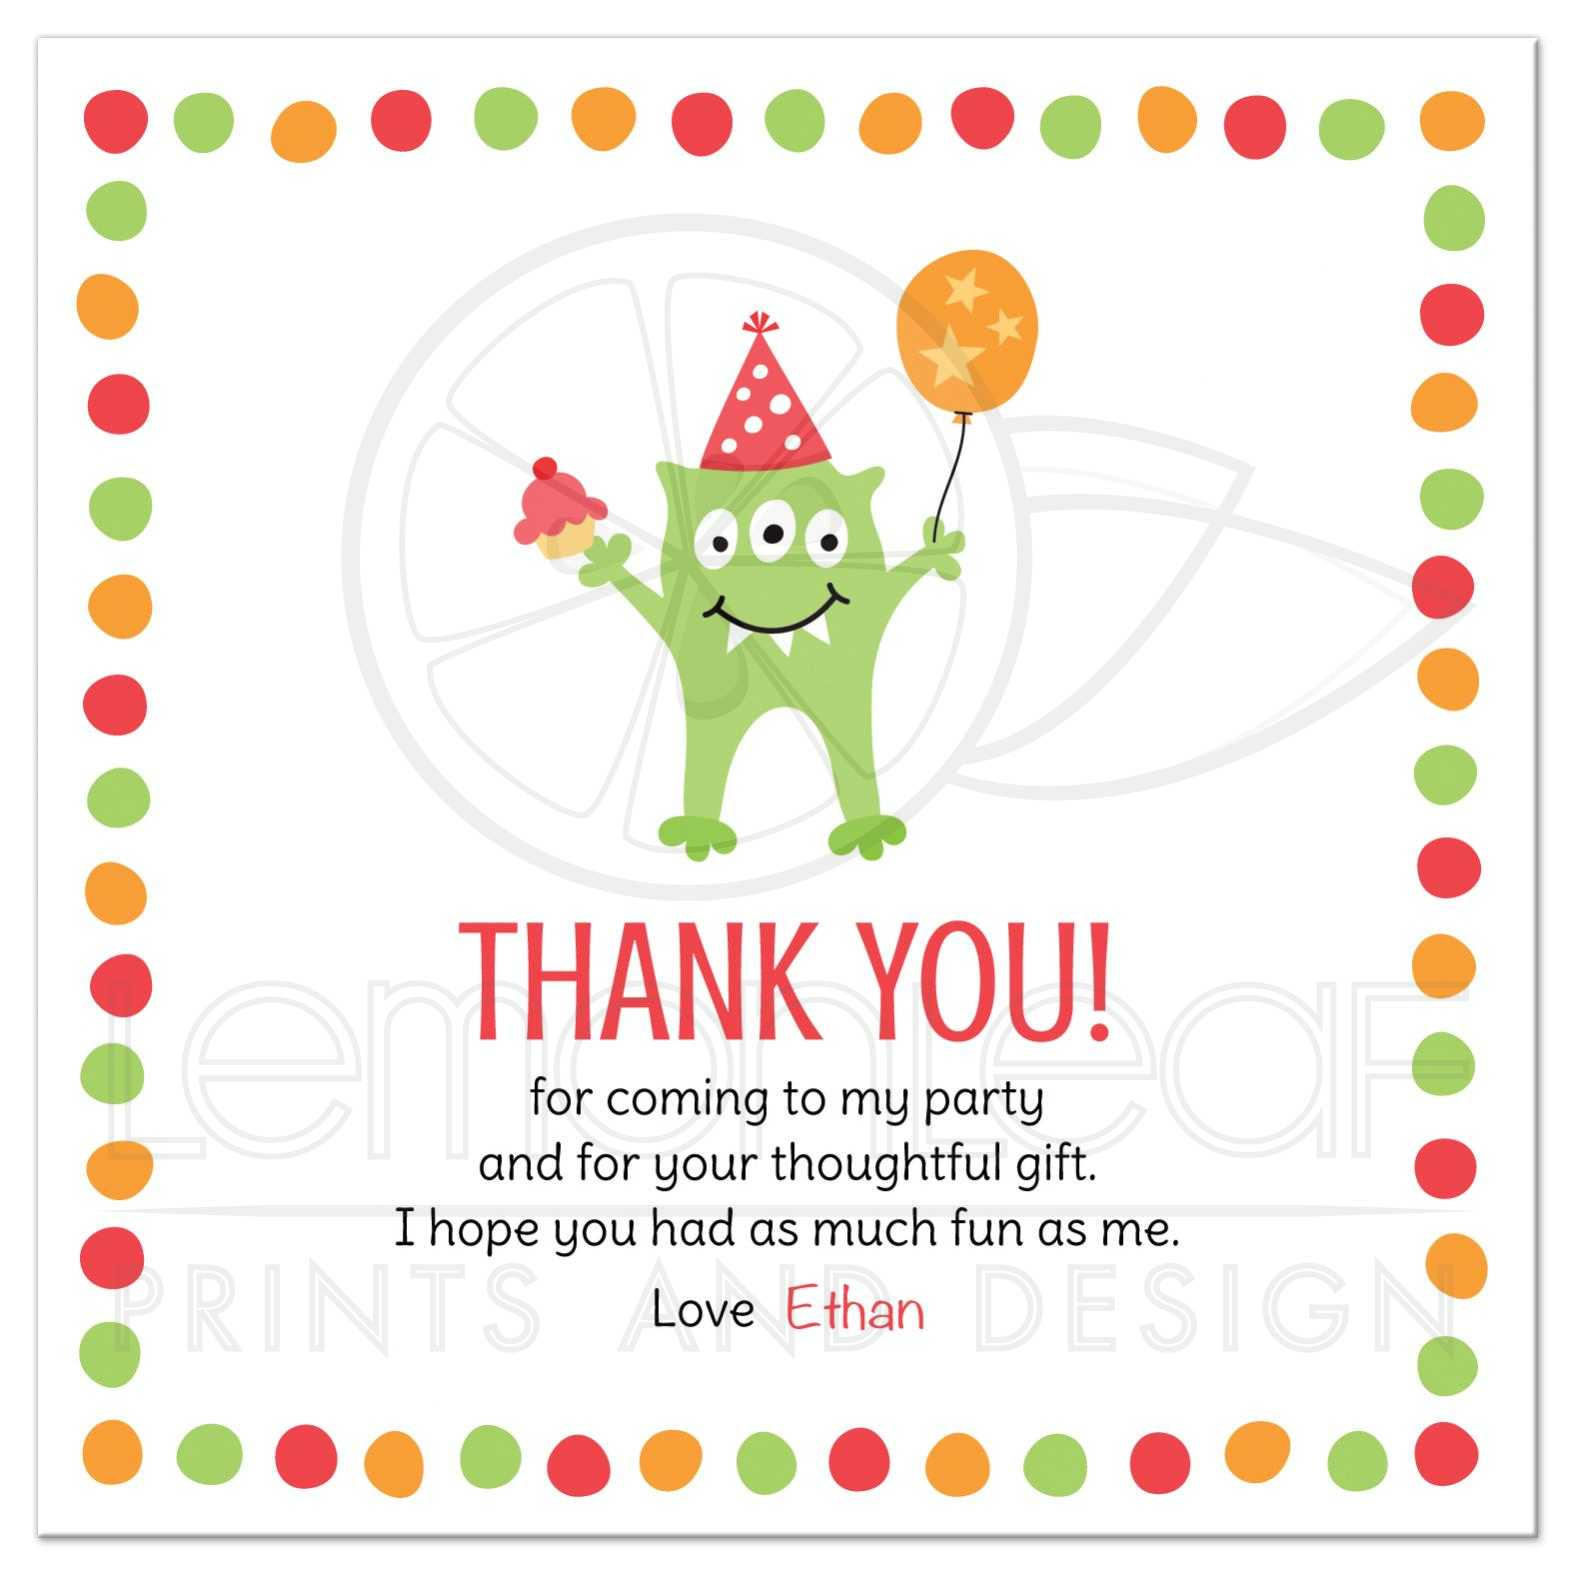 Thank You Quotes For Baby Gift: Monster With Three Eyes, Balloon And Party Hat Birthday